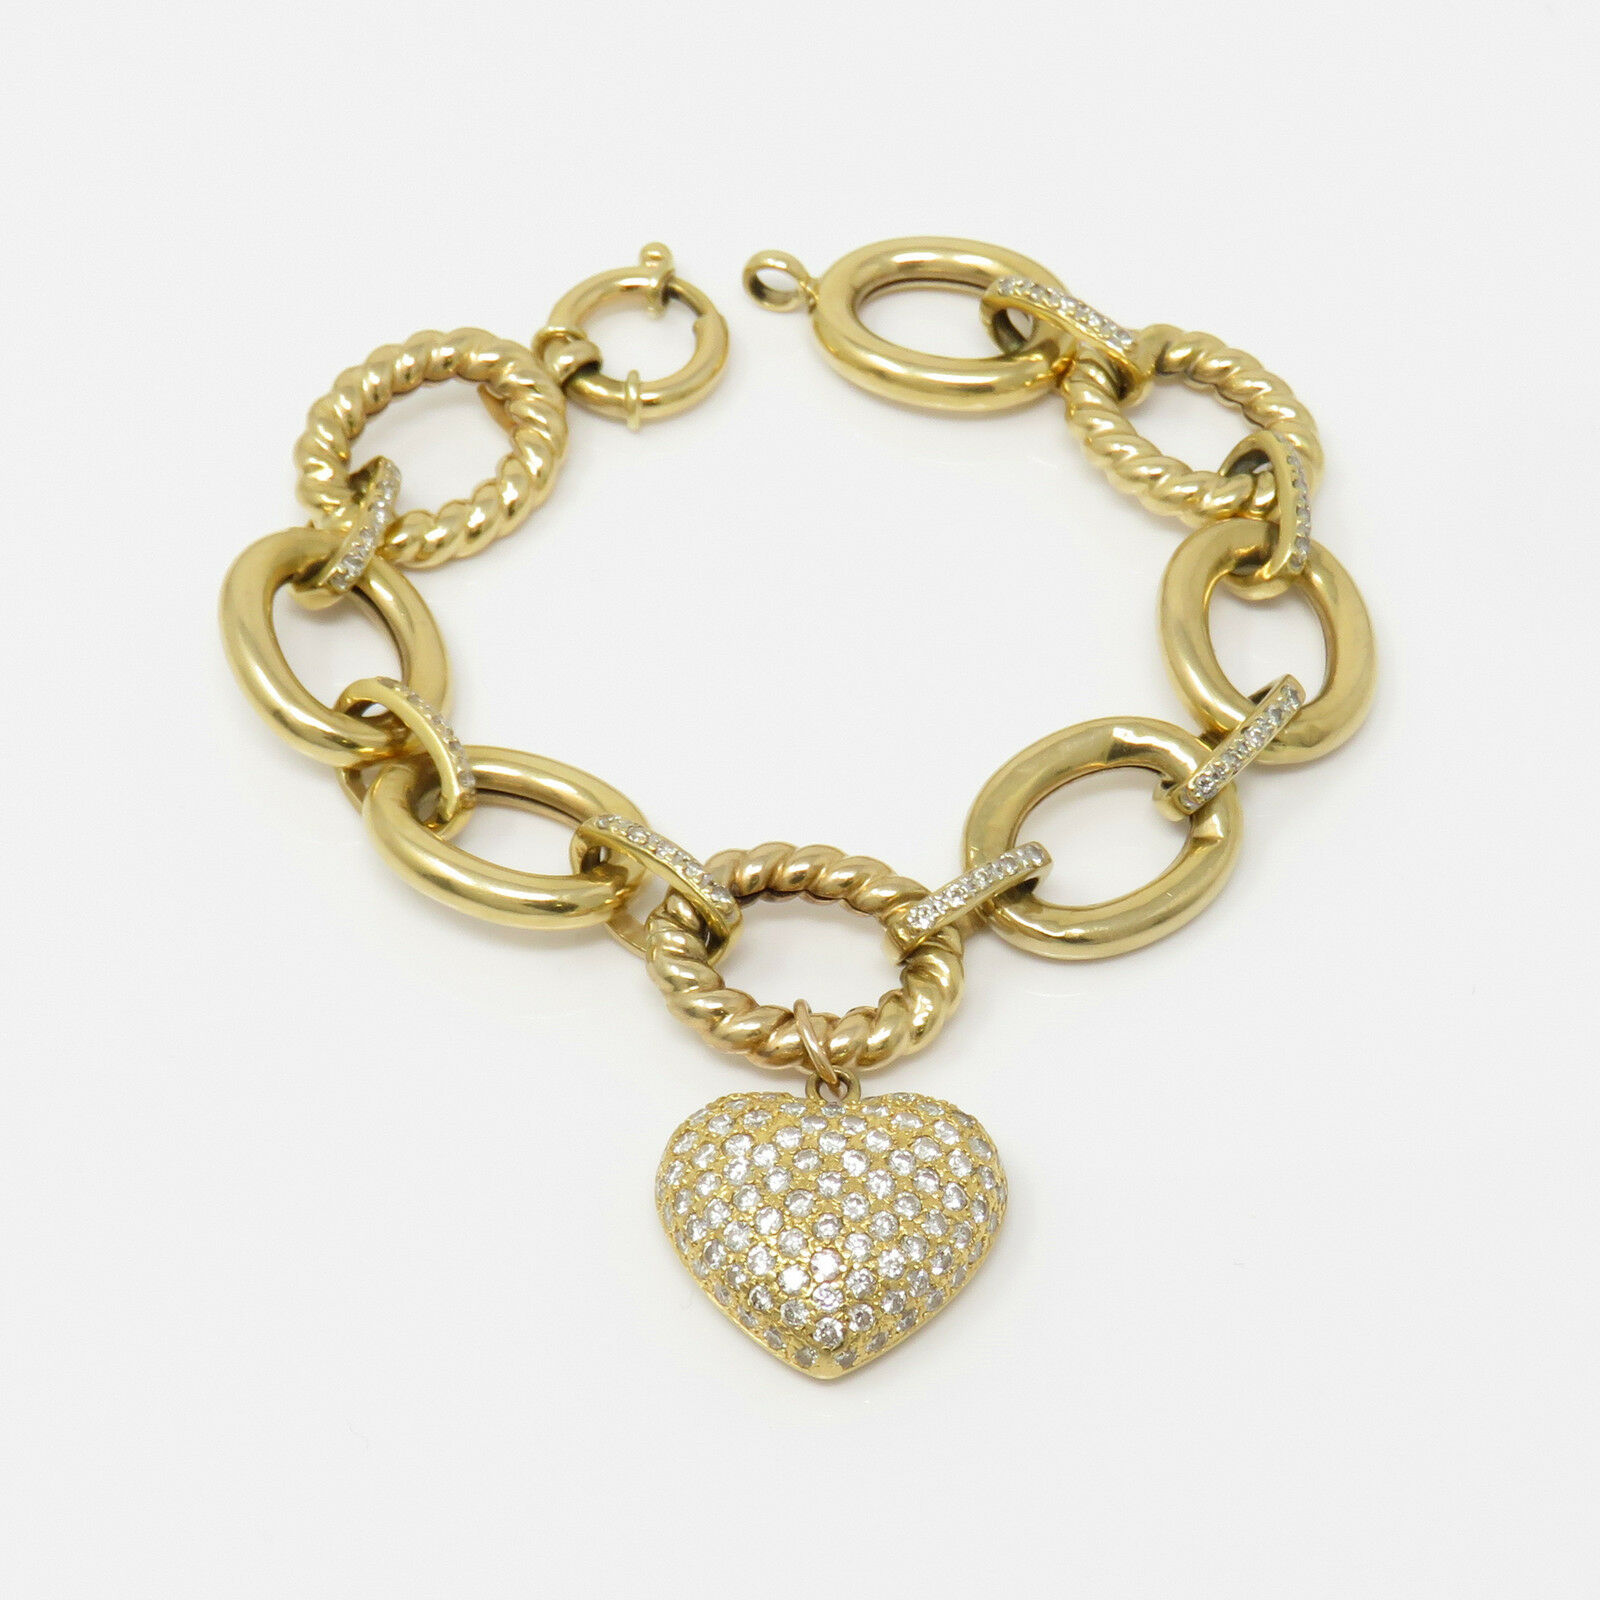 NYJEWEL 18k gold 4ct Diamond Heart Charm Cable Link Bracelet